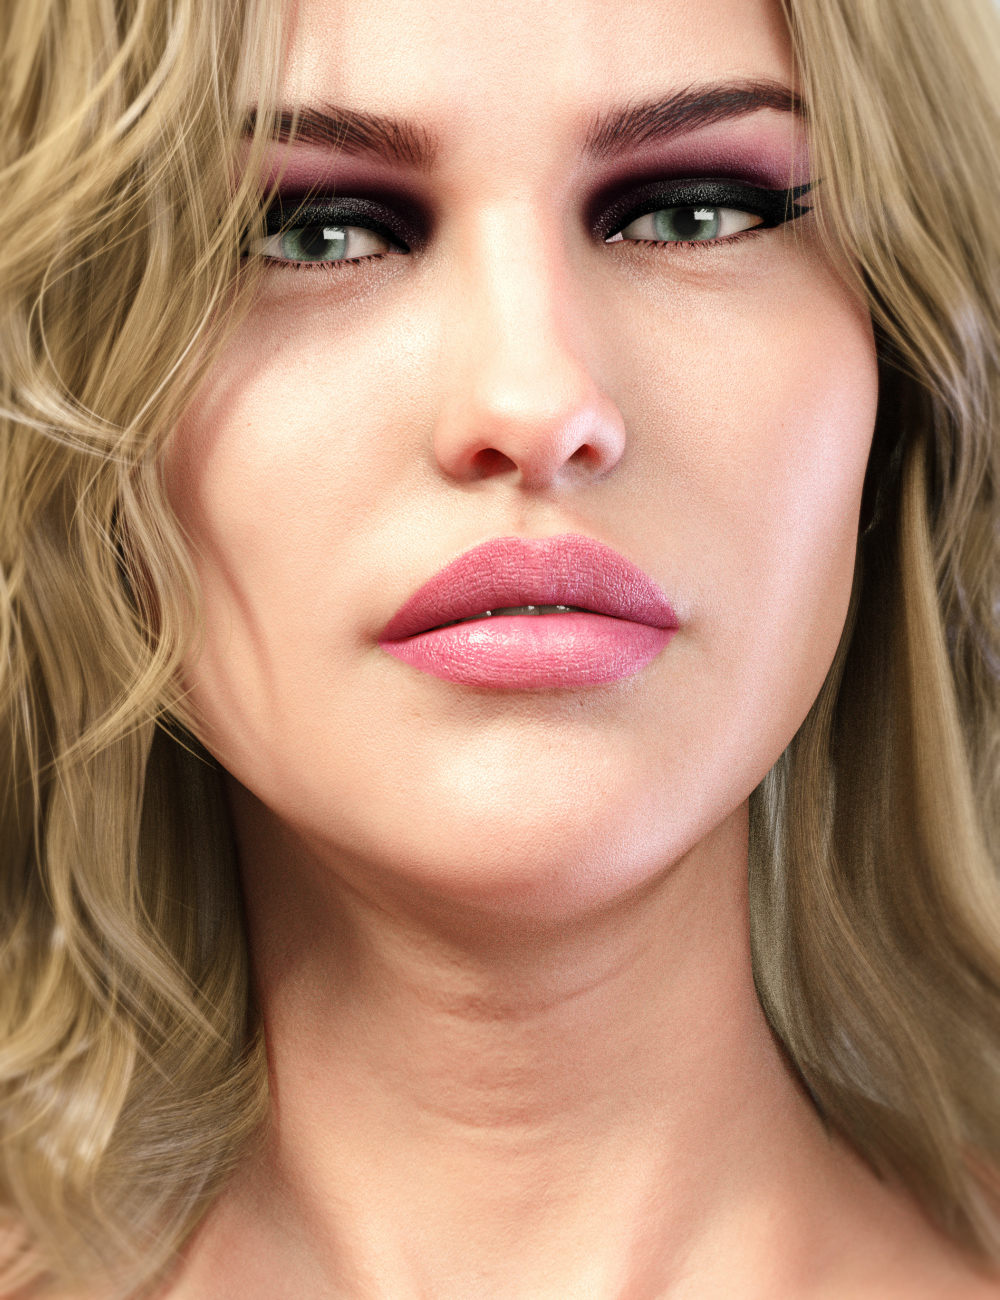 LIE Make-Up Set for Genesis 8 Female by: Neikdian, 3D Models by Daz 3D